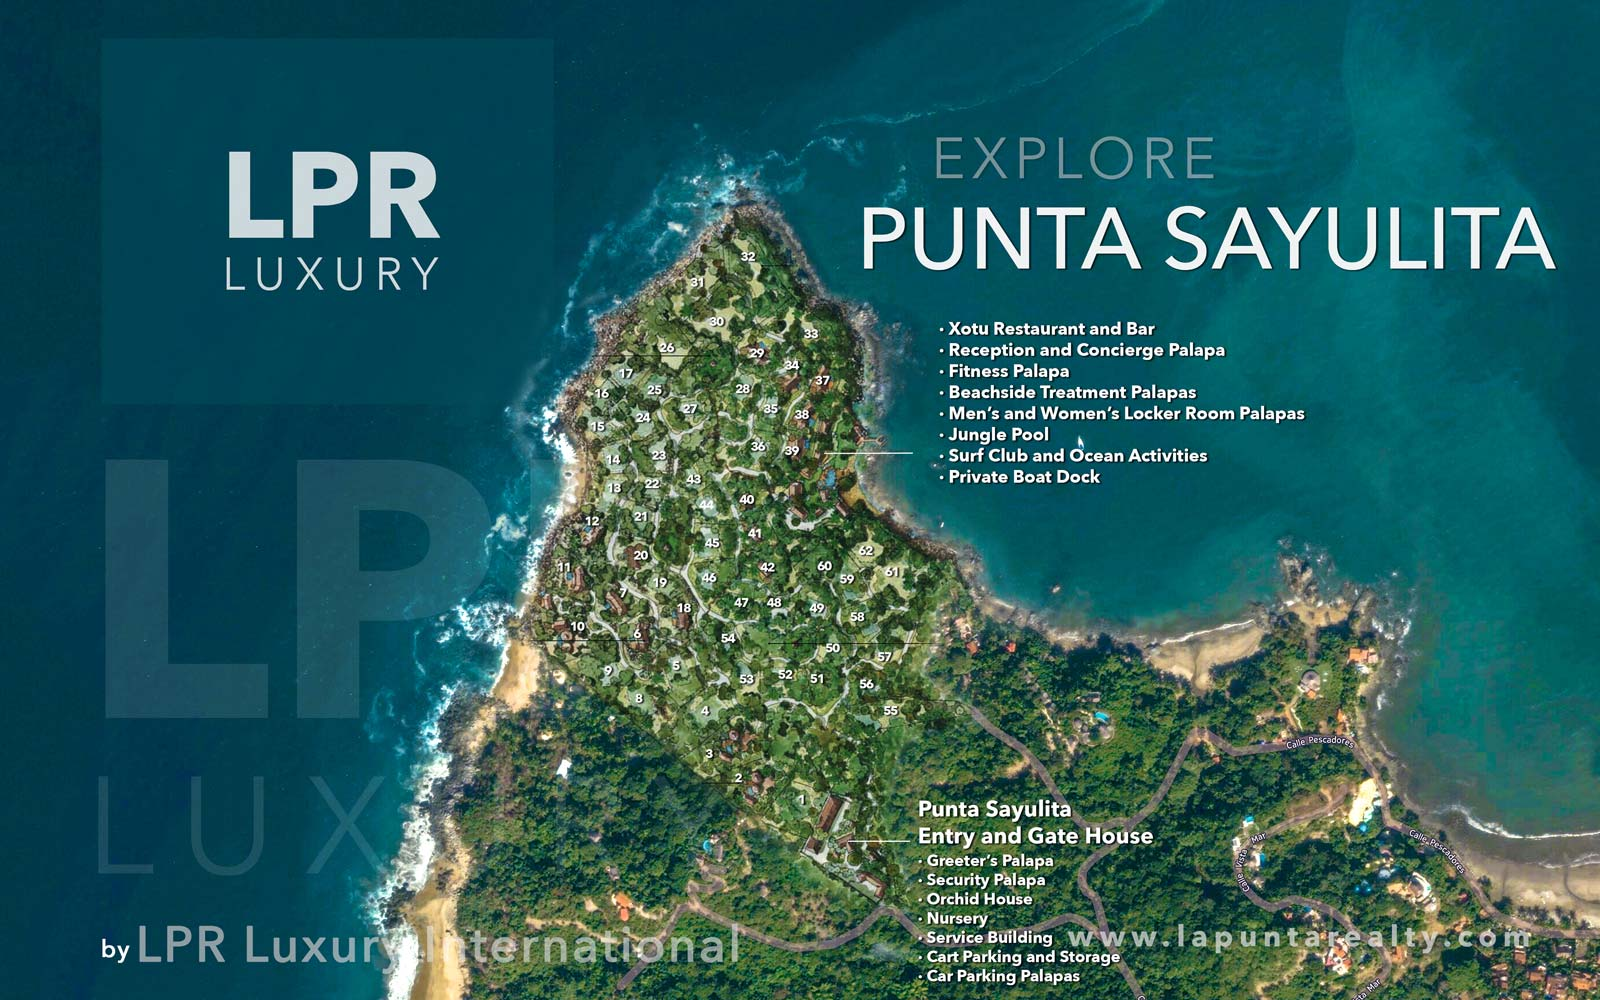 The Villas at Punta Sayulita are unique and luxurious hideaway homes that overlook the surf. Sayulita luxury Real Estate and Vacation Rentals - Riviera Nayarit, Mexico